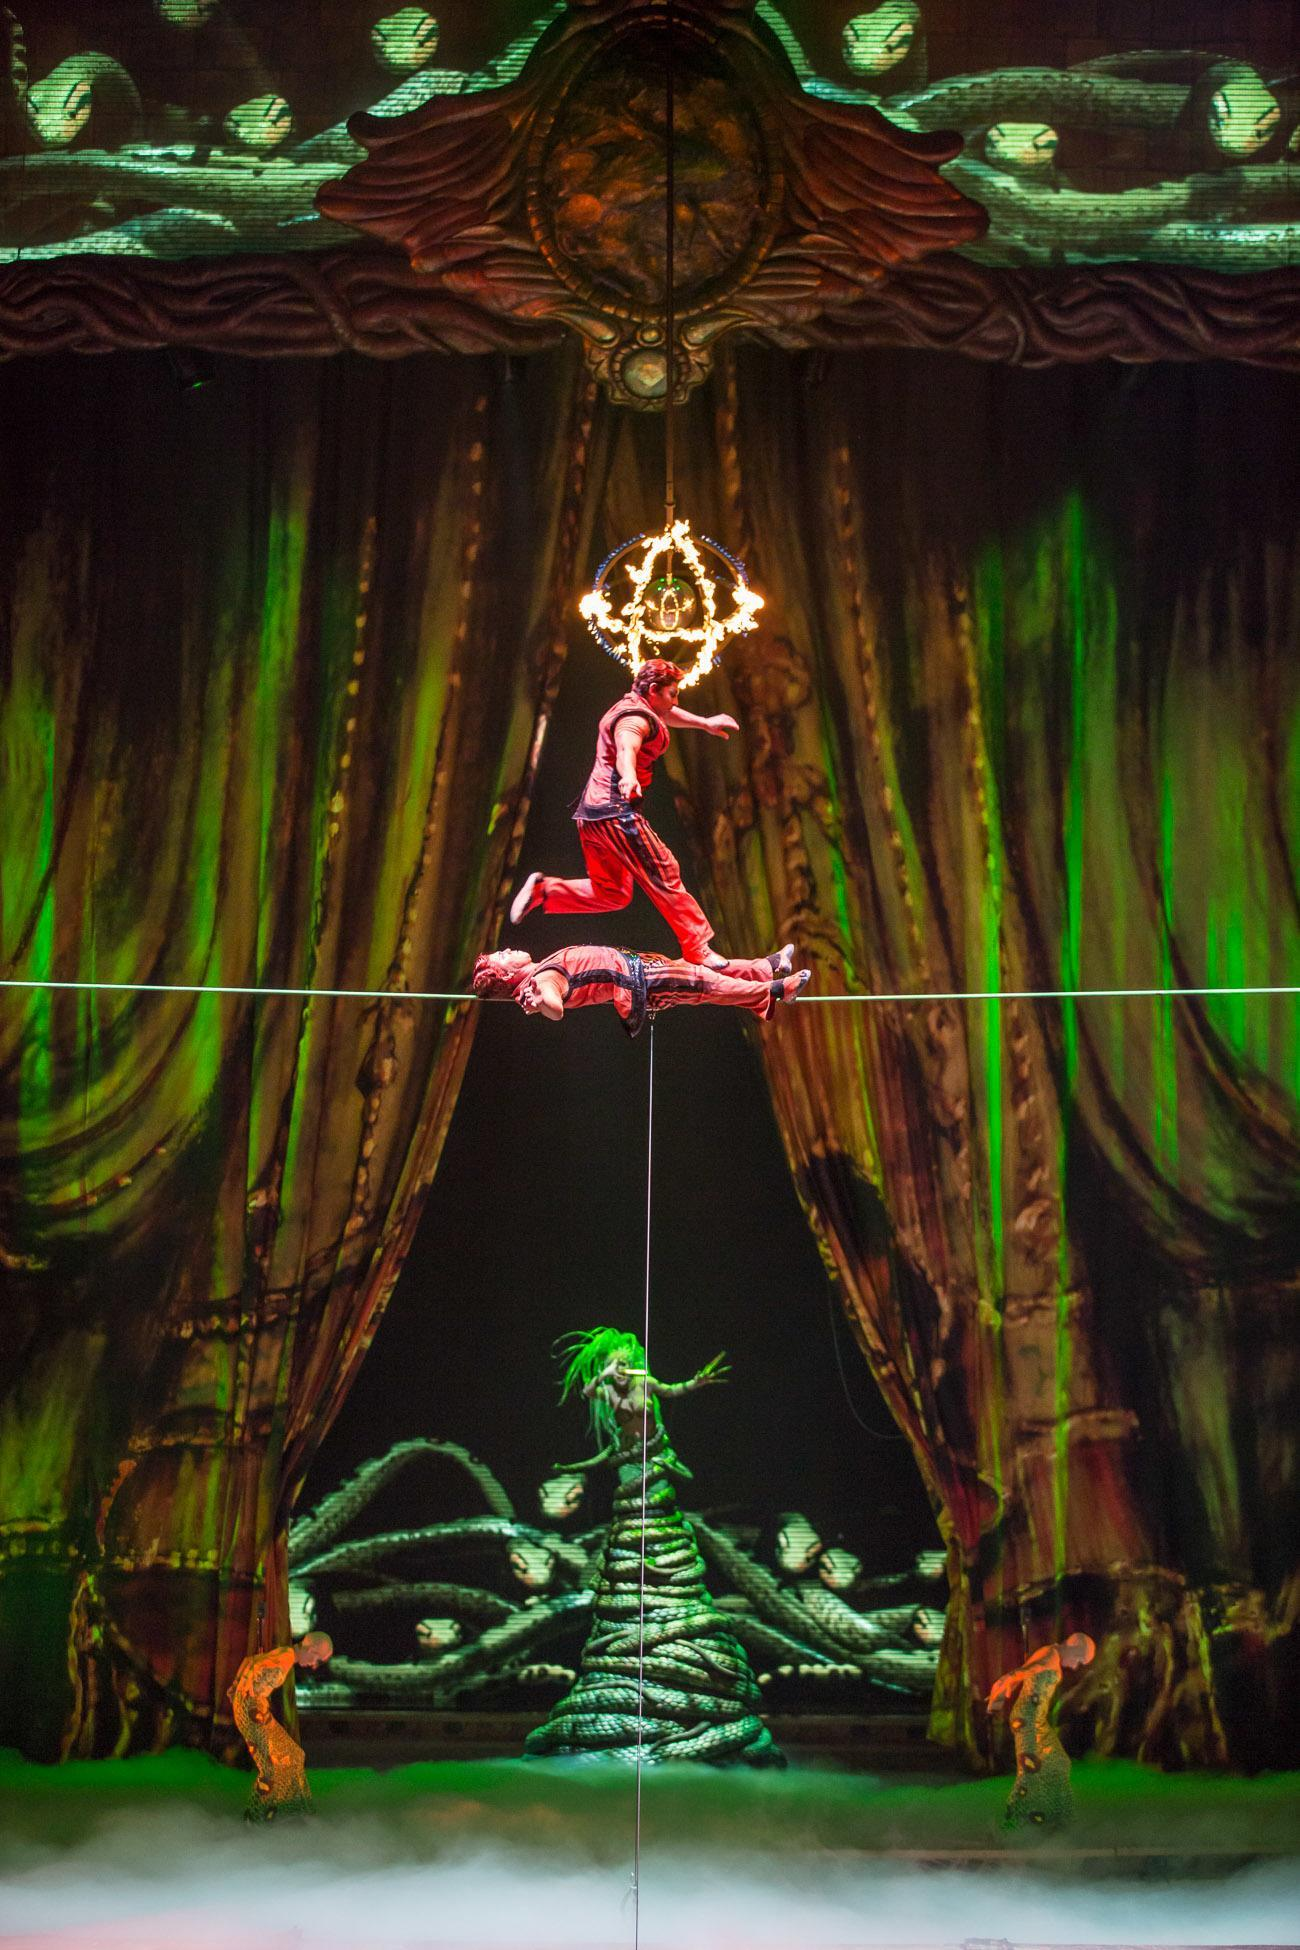 Cirque du Soleil 'Zarkana' show at the Aria